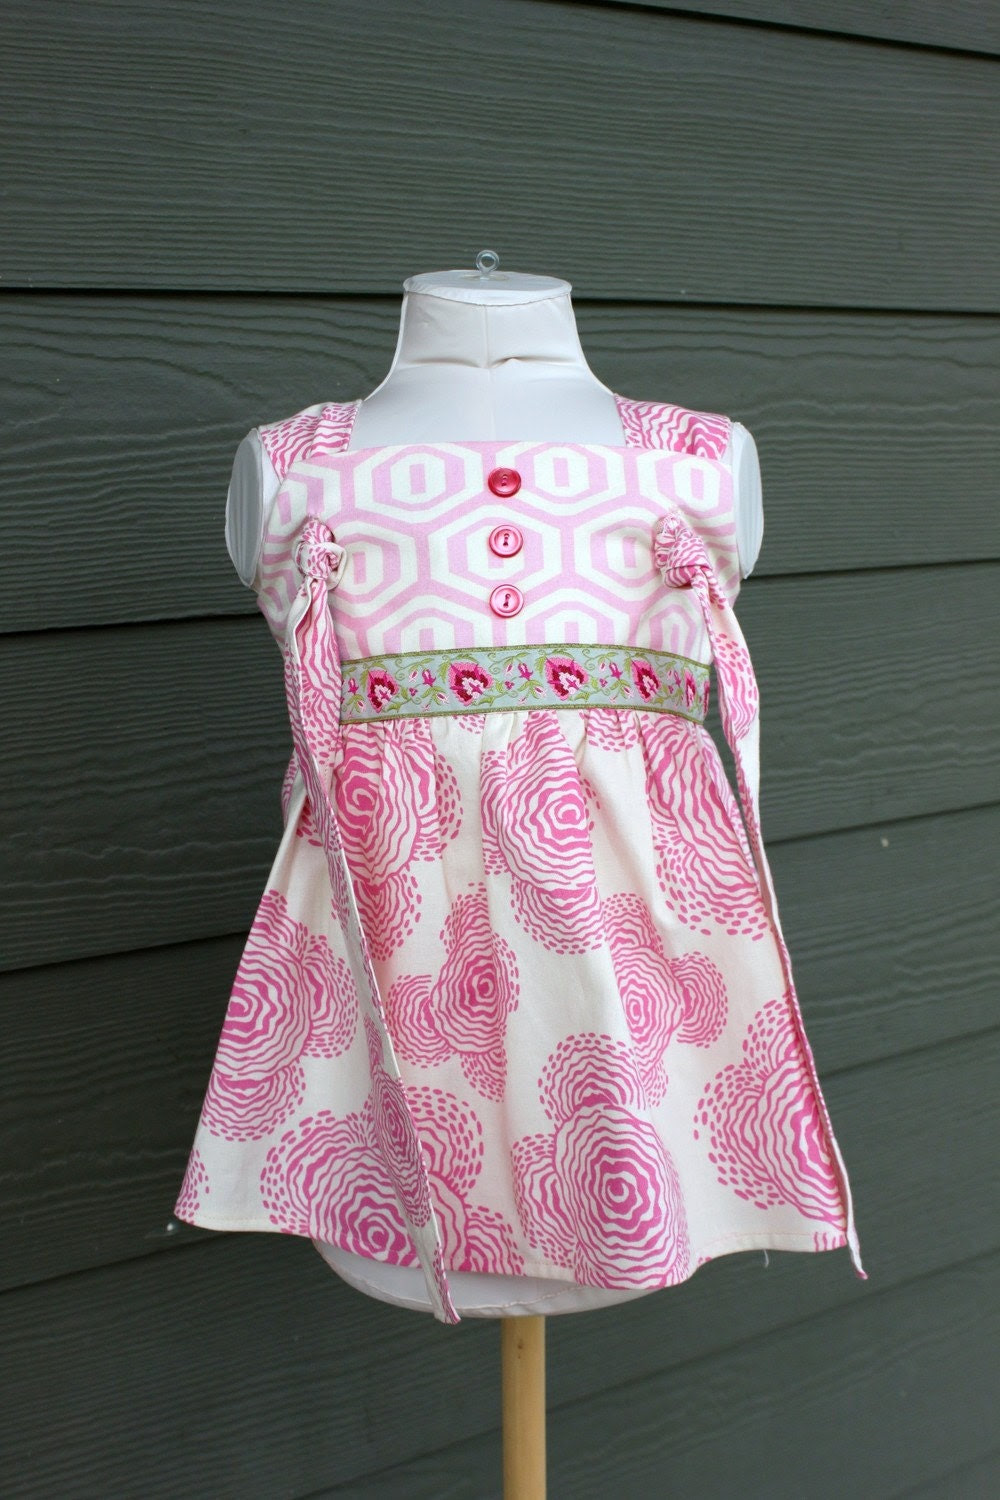 Boutique Knot  Top, size 12mo to 6yrs